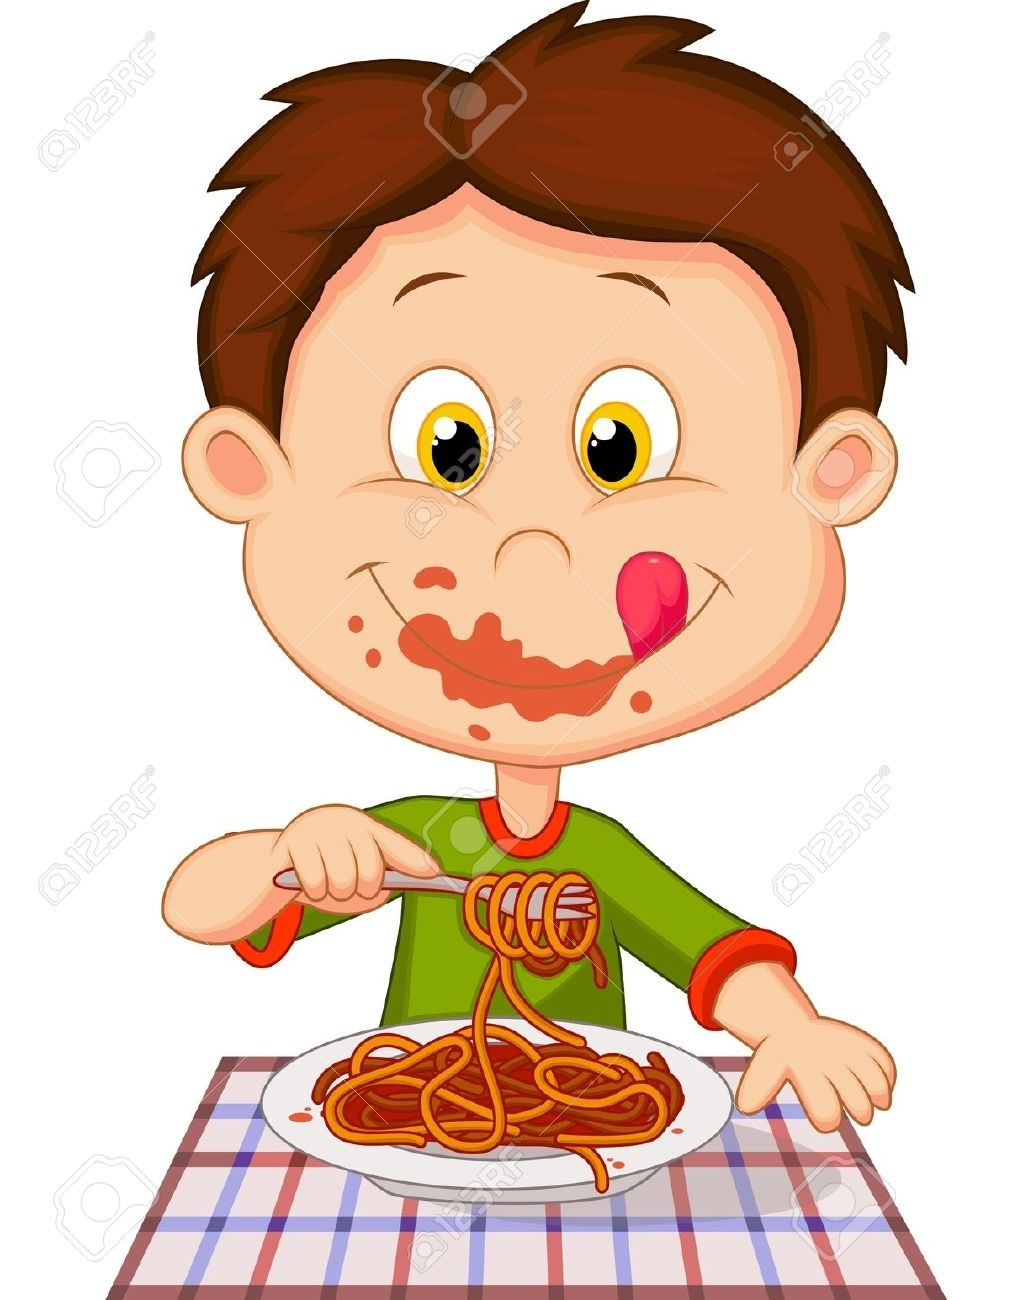 Eating writings and essays. Dinner clipart boy